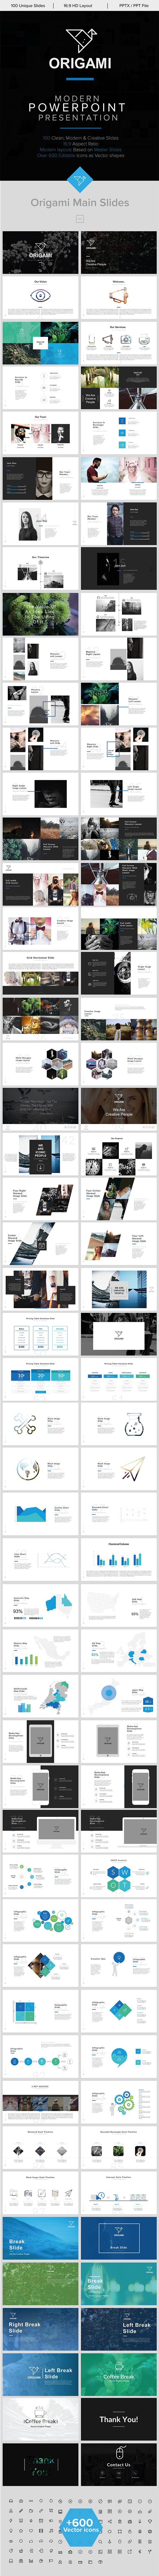 Origami minimal powerpoint template by pixelland graphicriver origami minimal powerpoint template business powerpoint templates toneelgroepblik Gallery